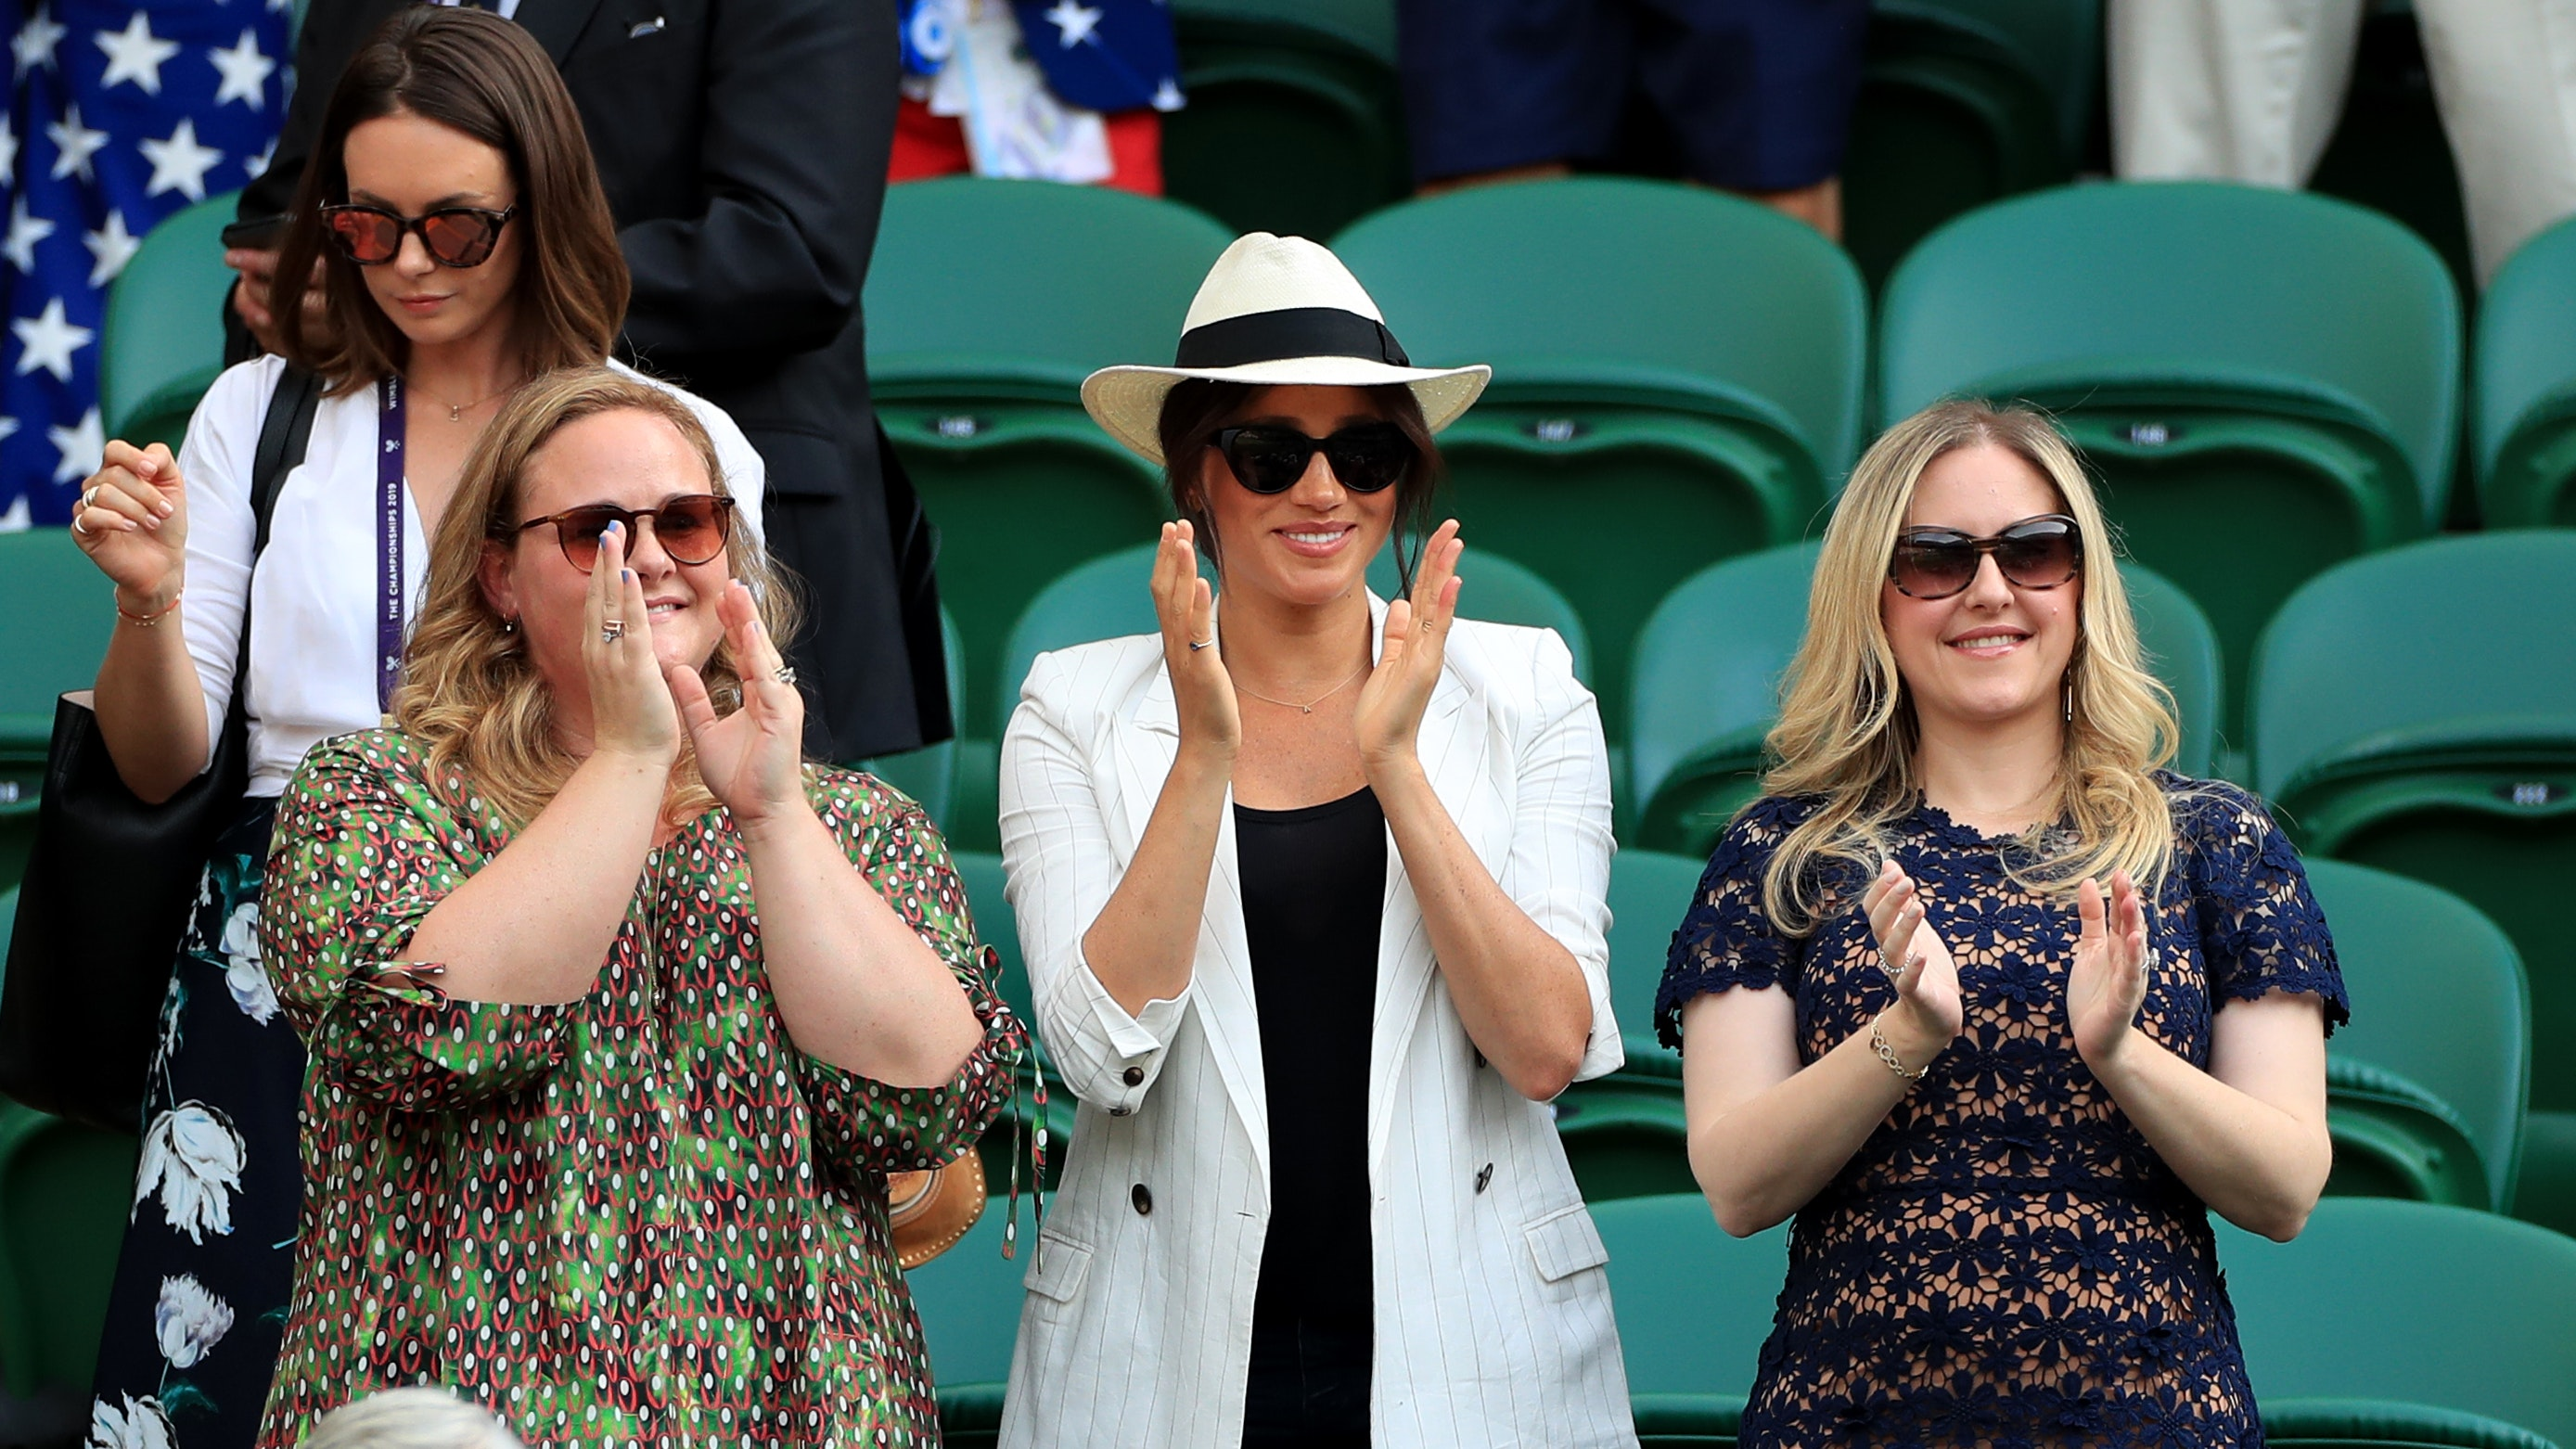 Meghan Markle and Kate Middleton Are Recreating Their Big Summer Outing Tomorrow